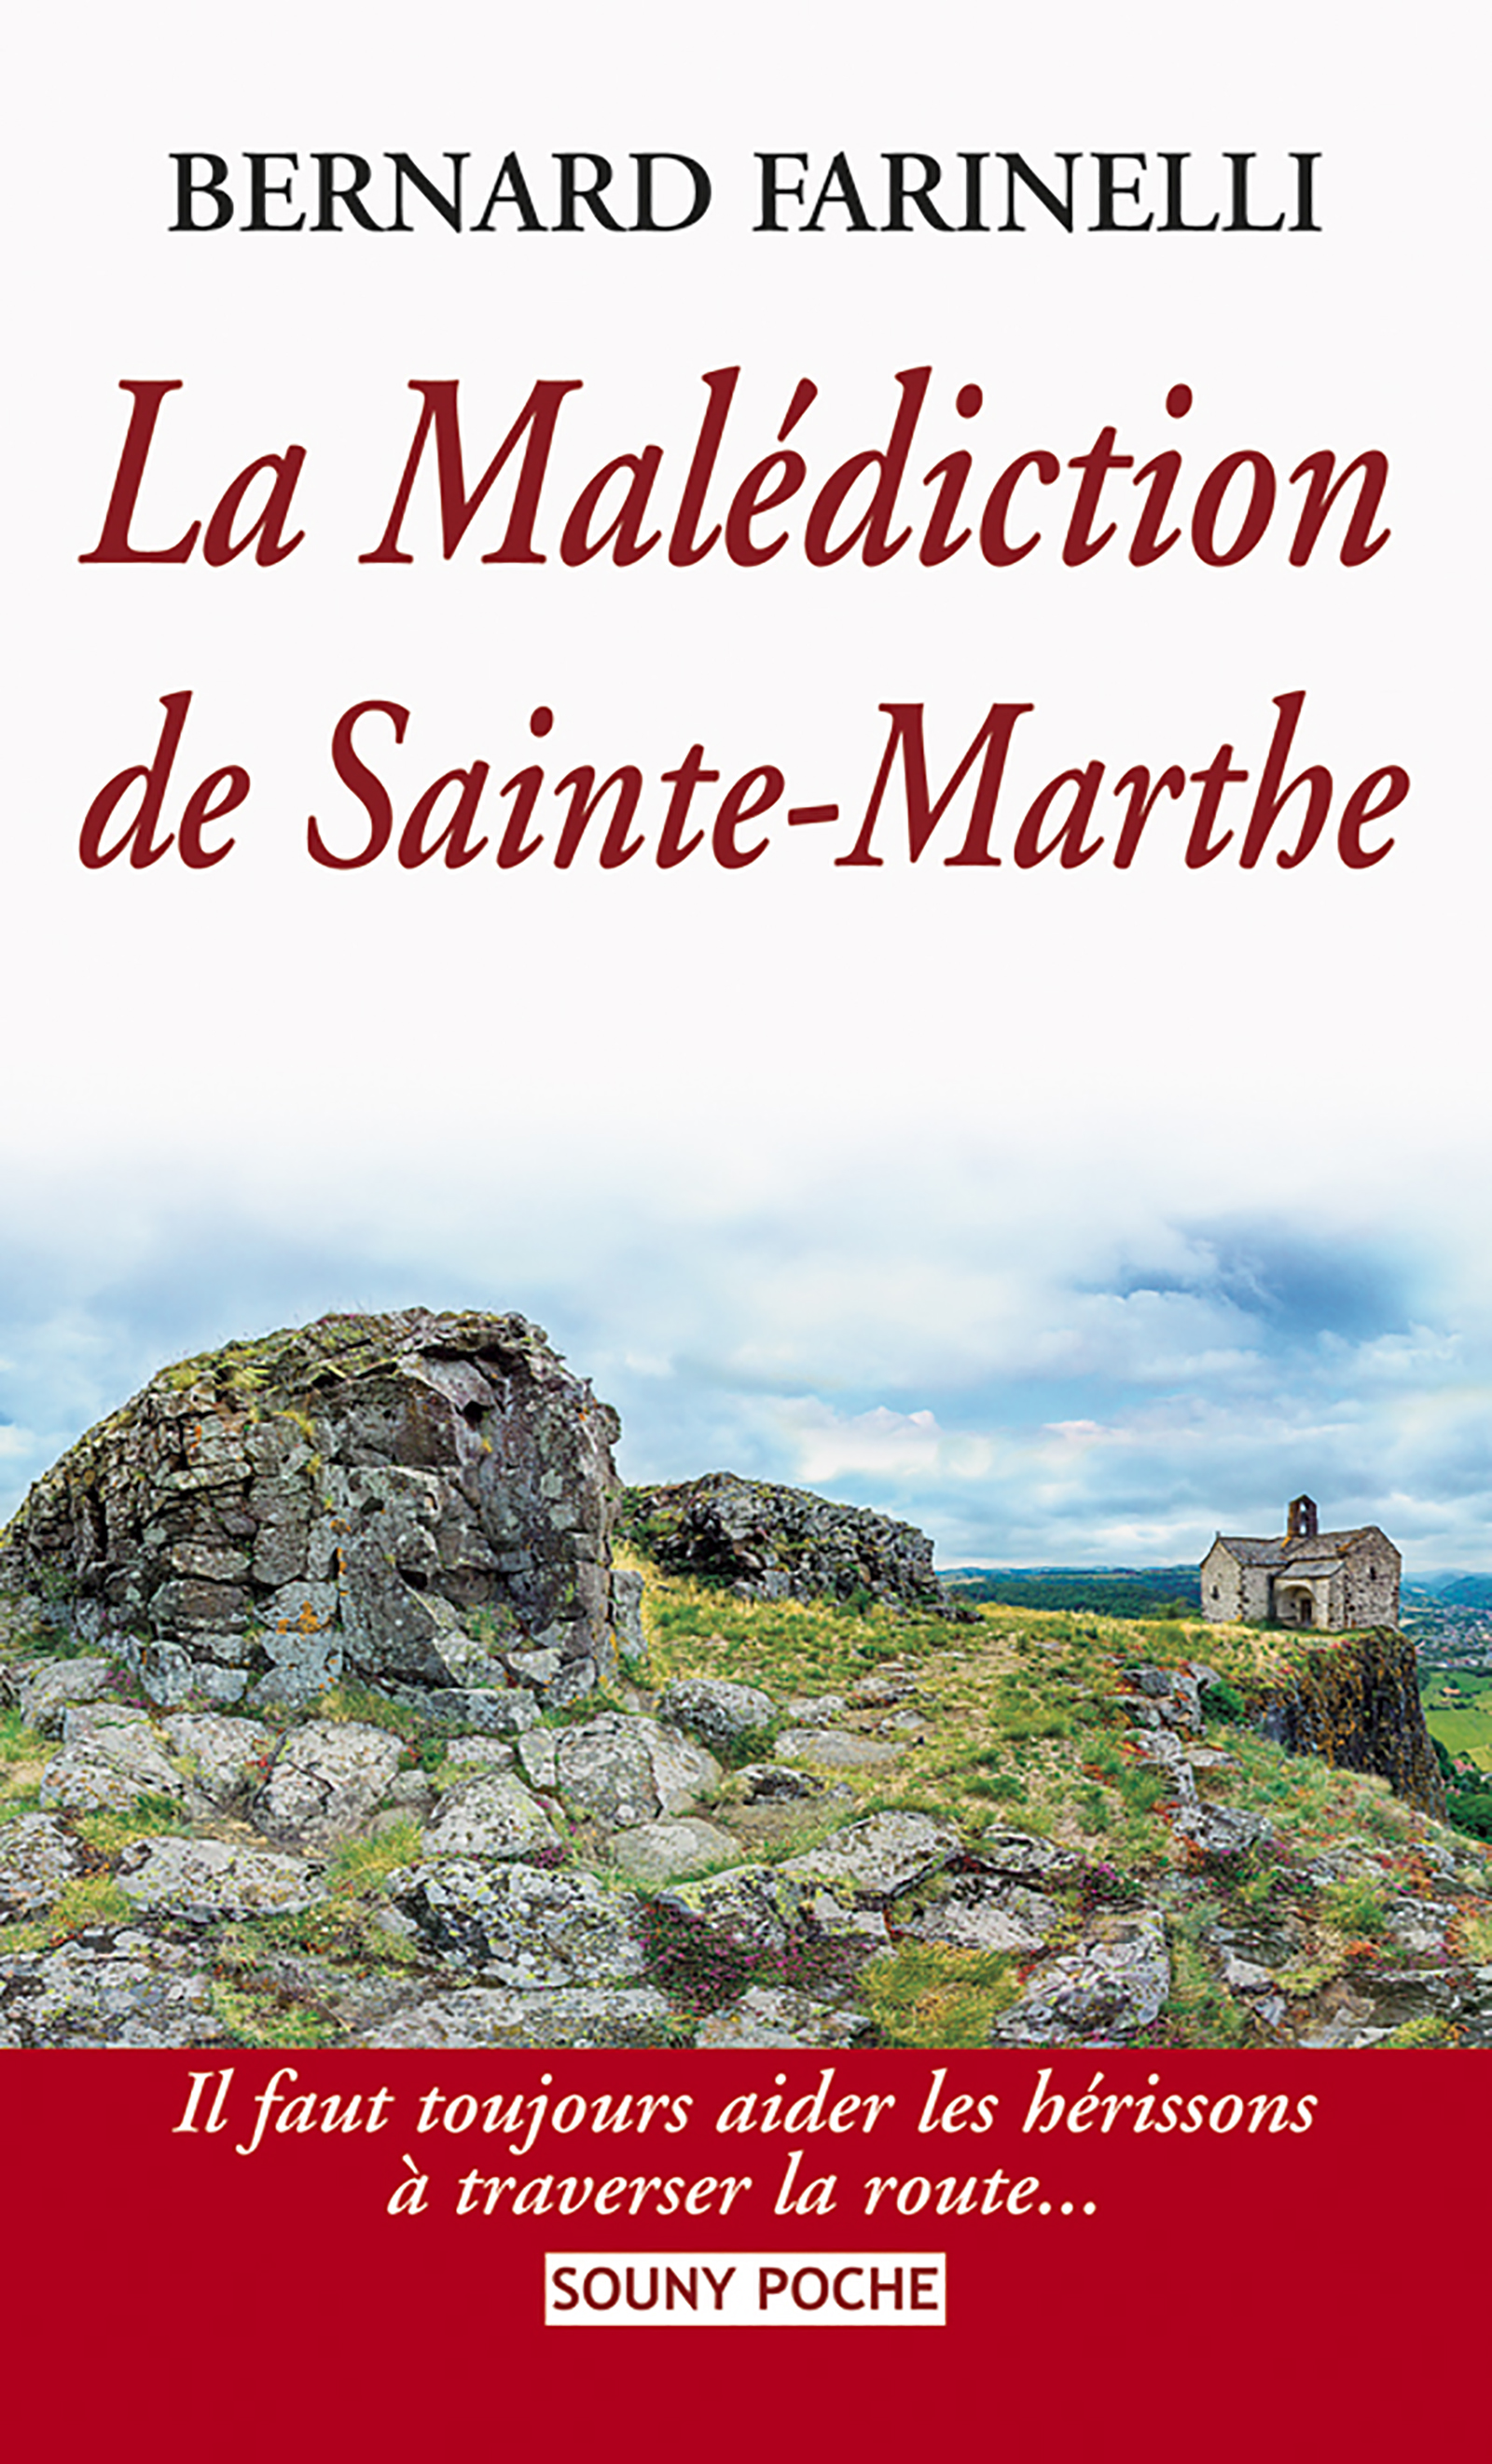 La Malédiction de Sainte-Marthe - Bernard Farinelli